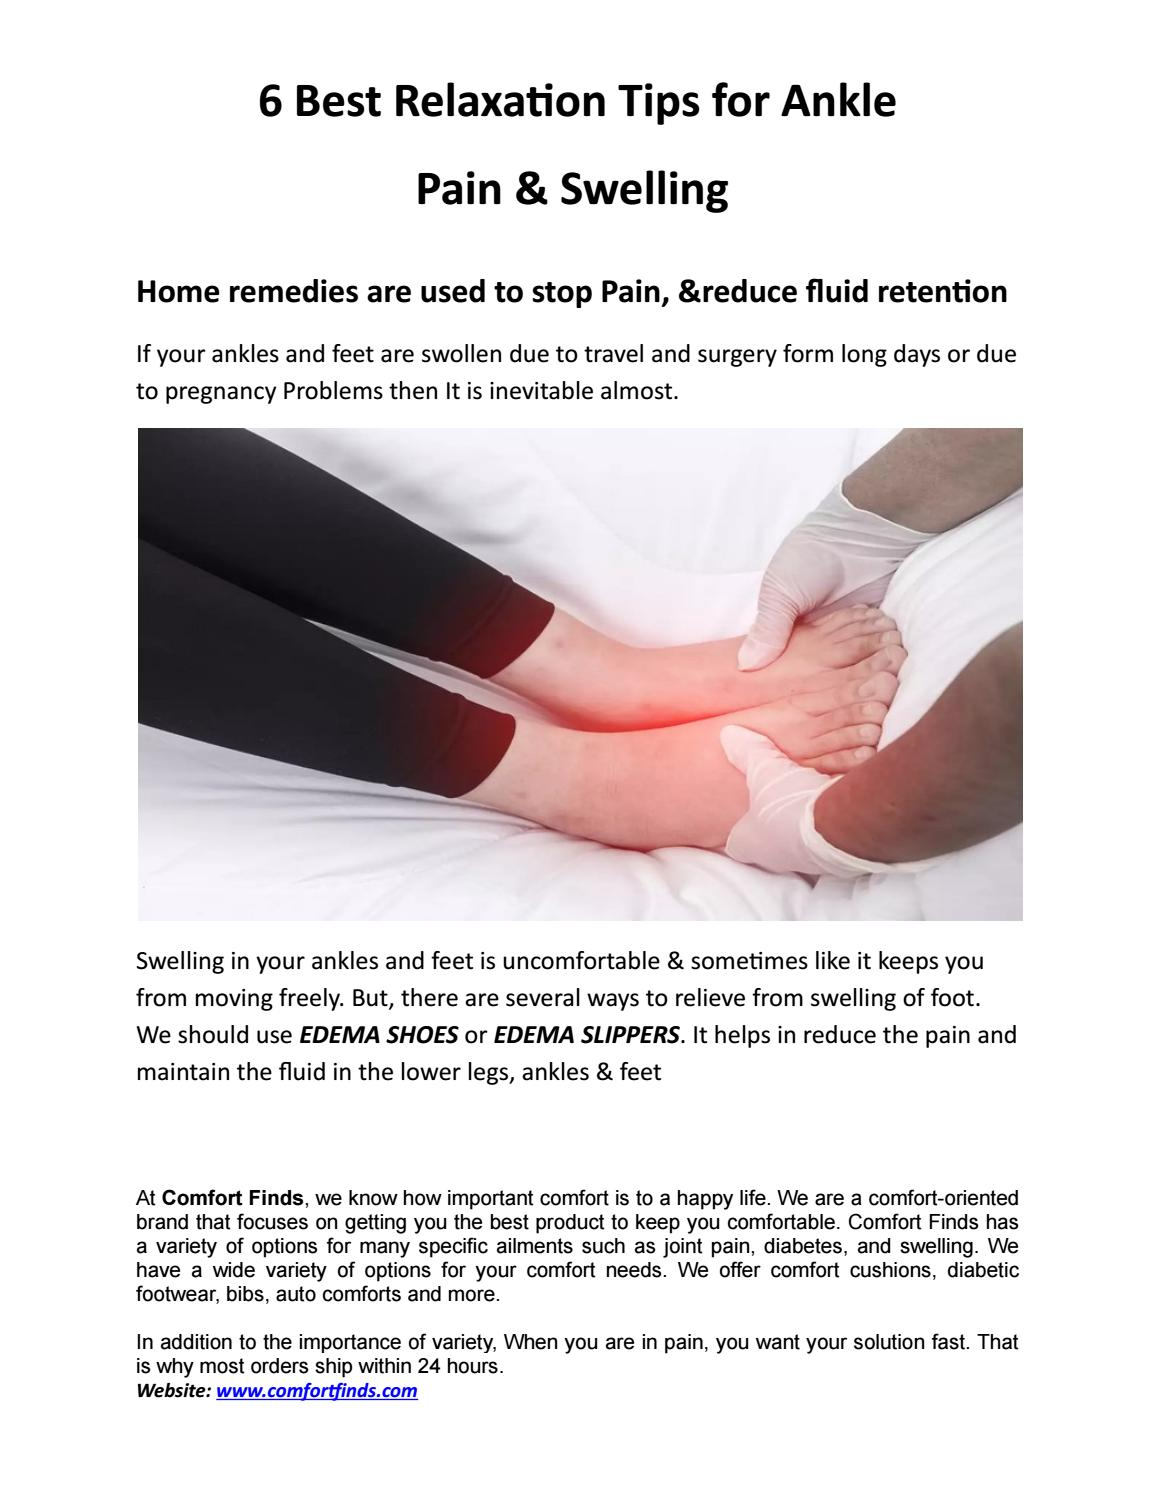 6 Best Relaxation Tips for Ankle Pain & Swelling by COMFORTFINDS - issuu